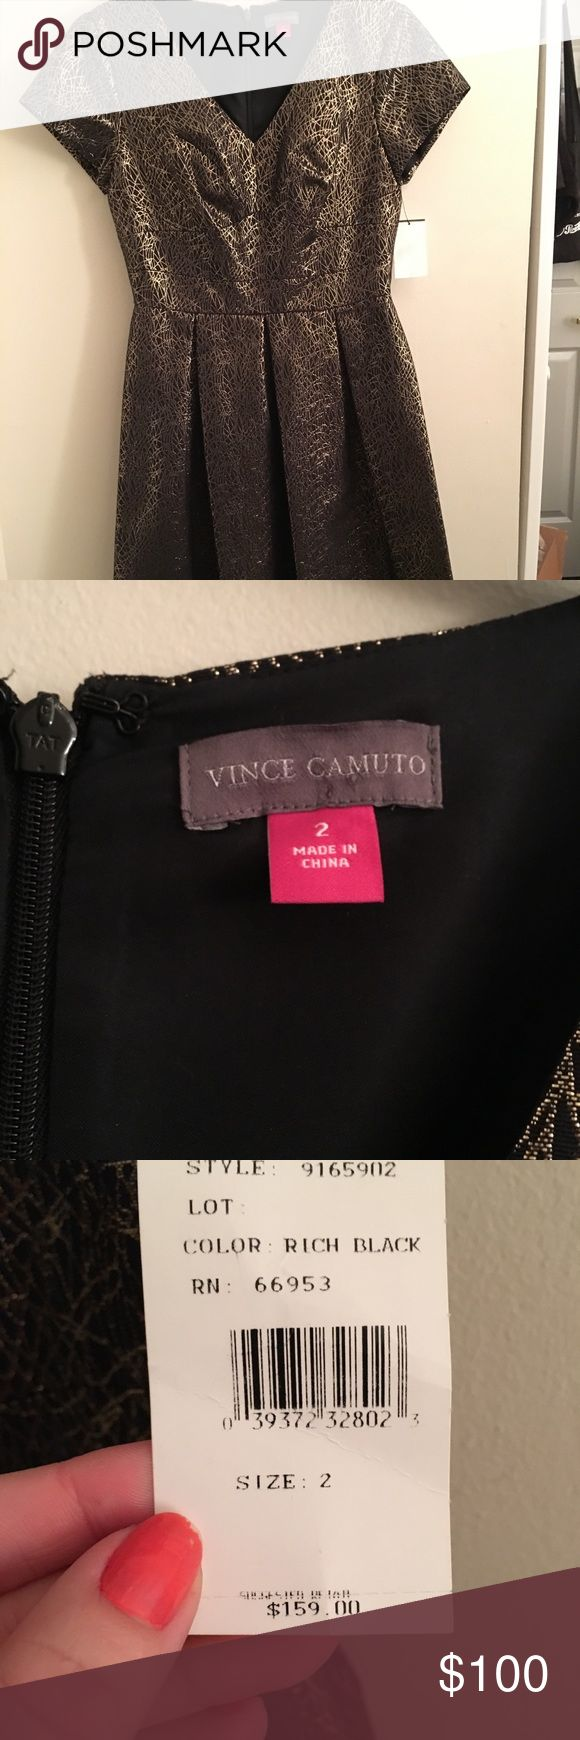 NWT Vince Camuto Gold Shimmer Dress Beautiful black dress with a unique golden design patterned throughout. Back zipper and has a V neck.  51% Cotton, 36% Polyester, 13% Metallic Imported Dry Clean Only Back zip closure Invisible zipper Is lined Vince Camuto Dresses Mini